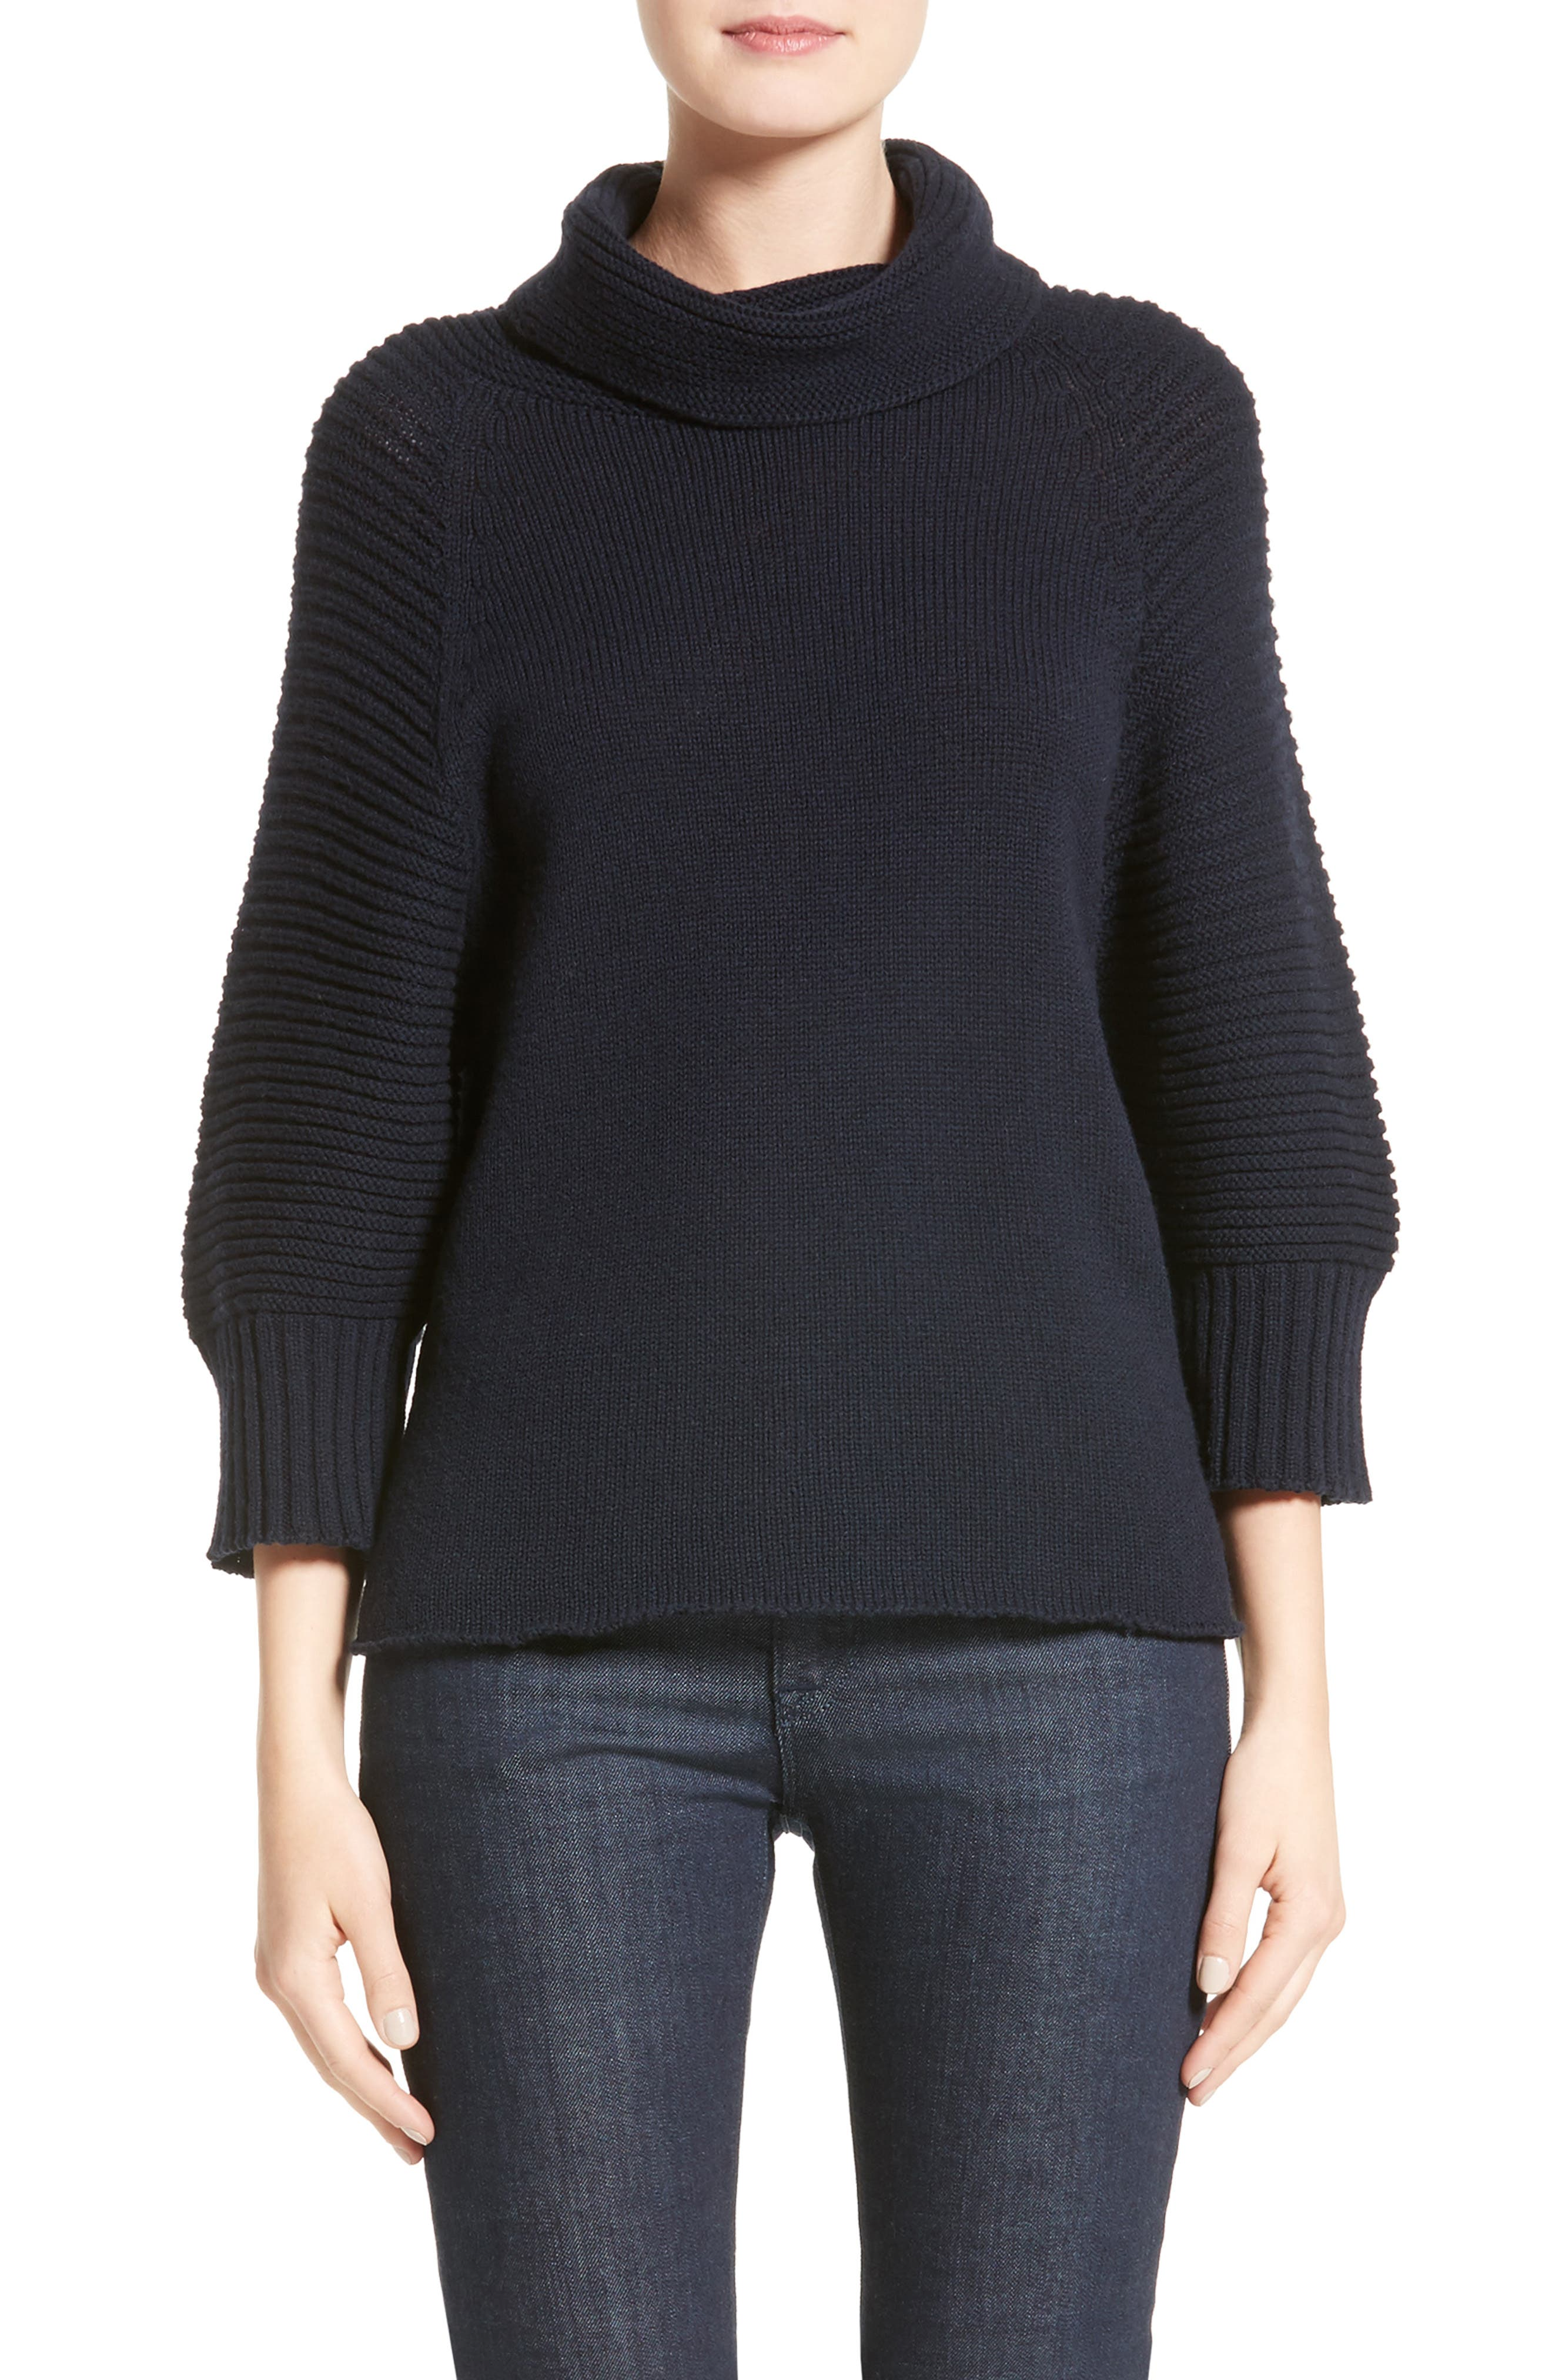 Armani Collezioni Interlock Wool & Cashmere Sweater